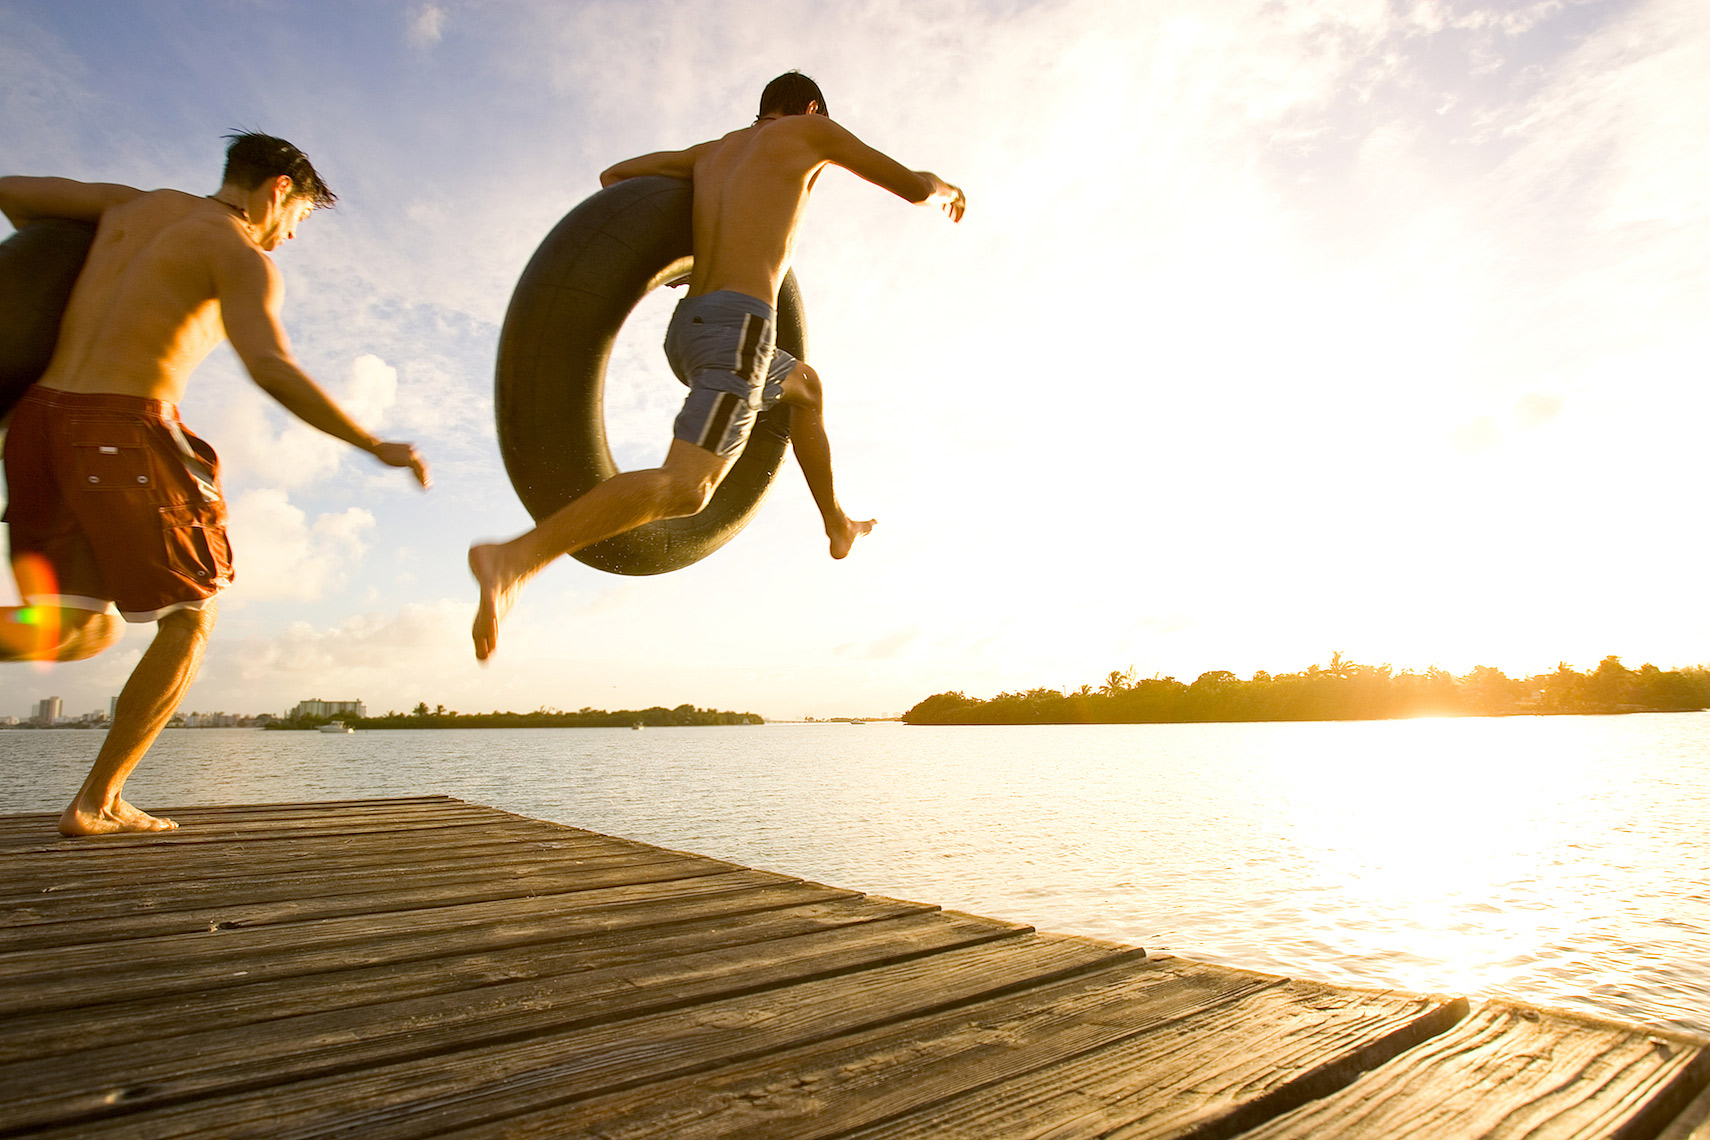 teenagers jumping off dock _shot for Coca_Cola_Robert_Holland.jpg